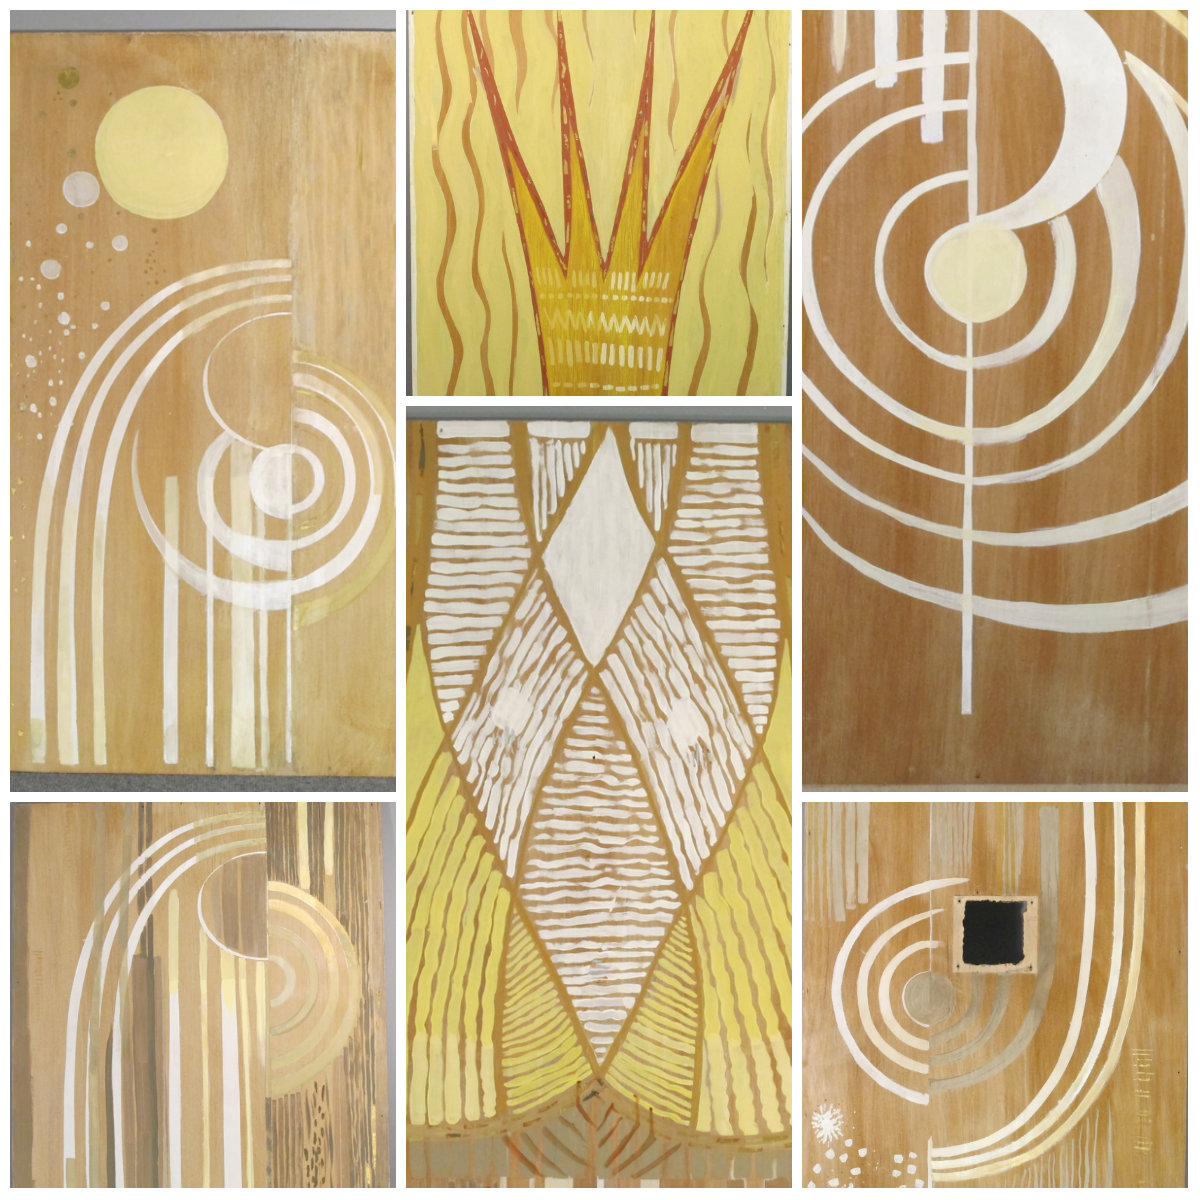 The six panels from Temple Emanuel, post-treatment